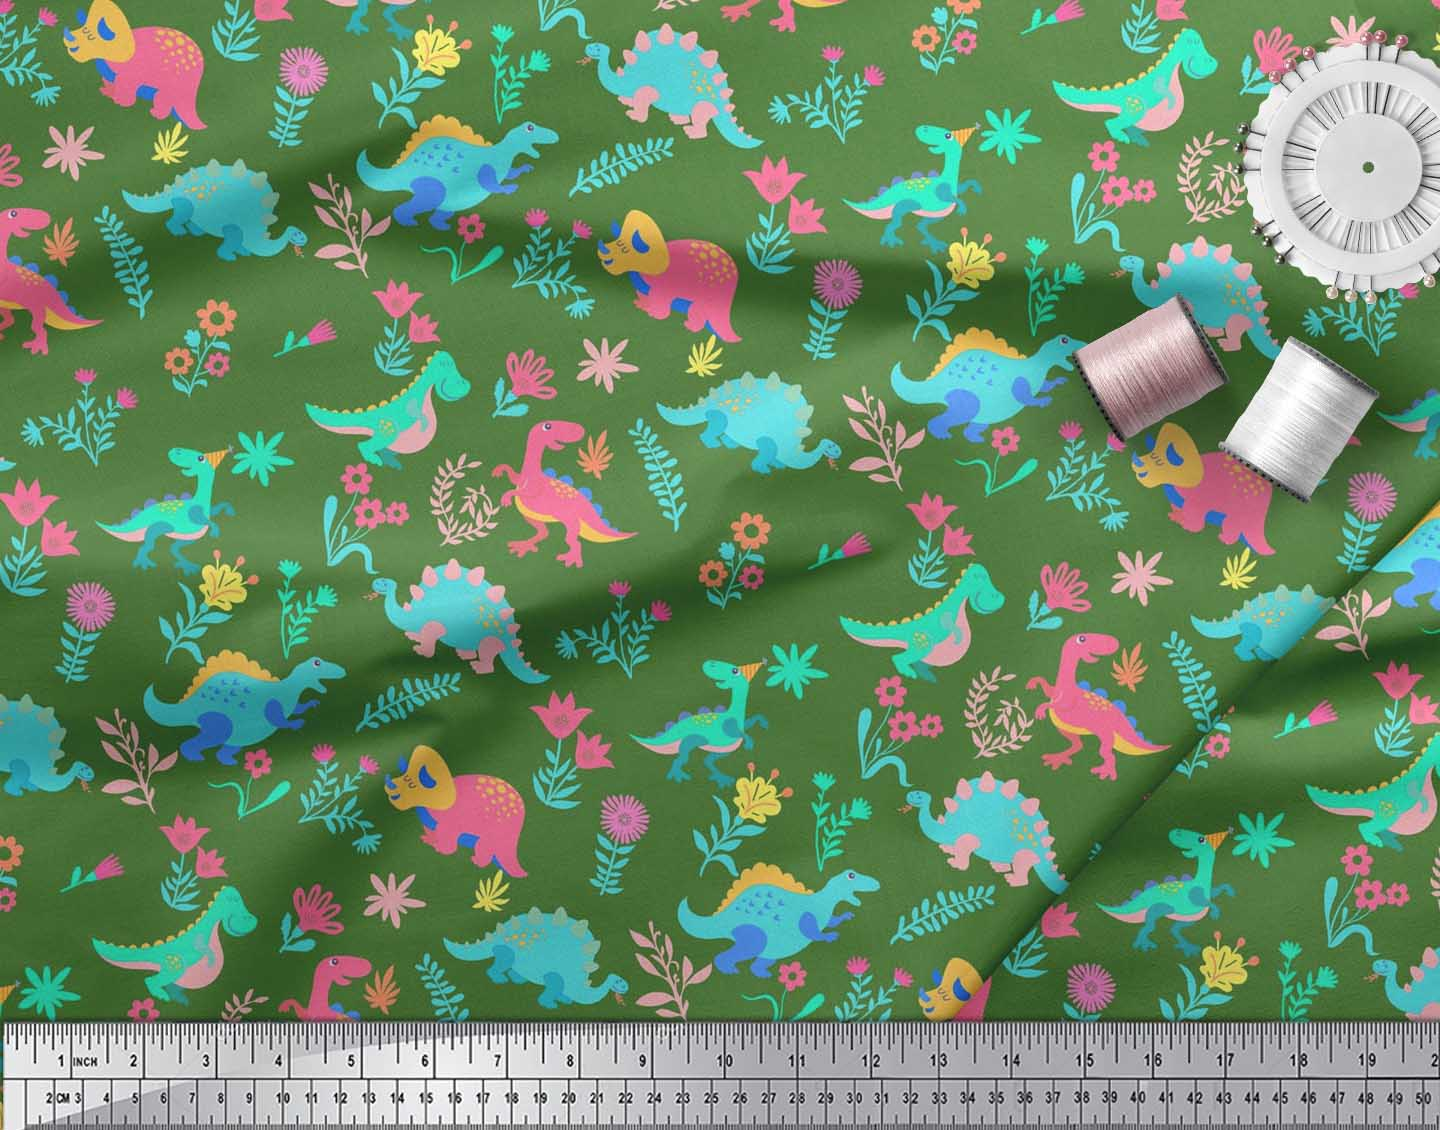 Soimoi-Green-Cotton-Poplin-Fabric-Aster-Flower-amp-Dinosaur-Kids-Print-Jut thumbnail 3